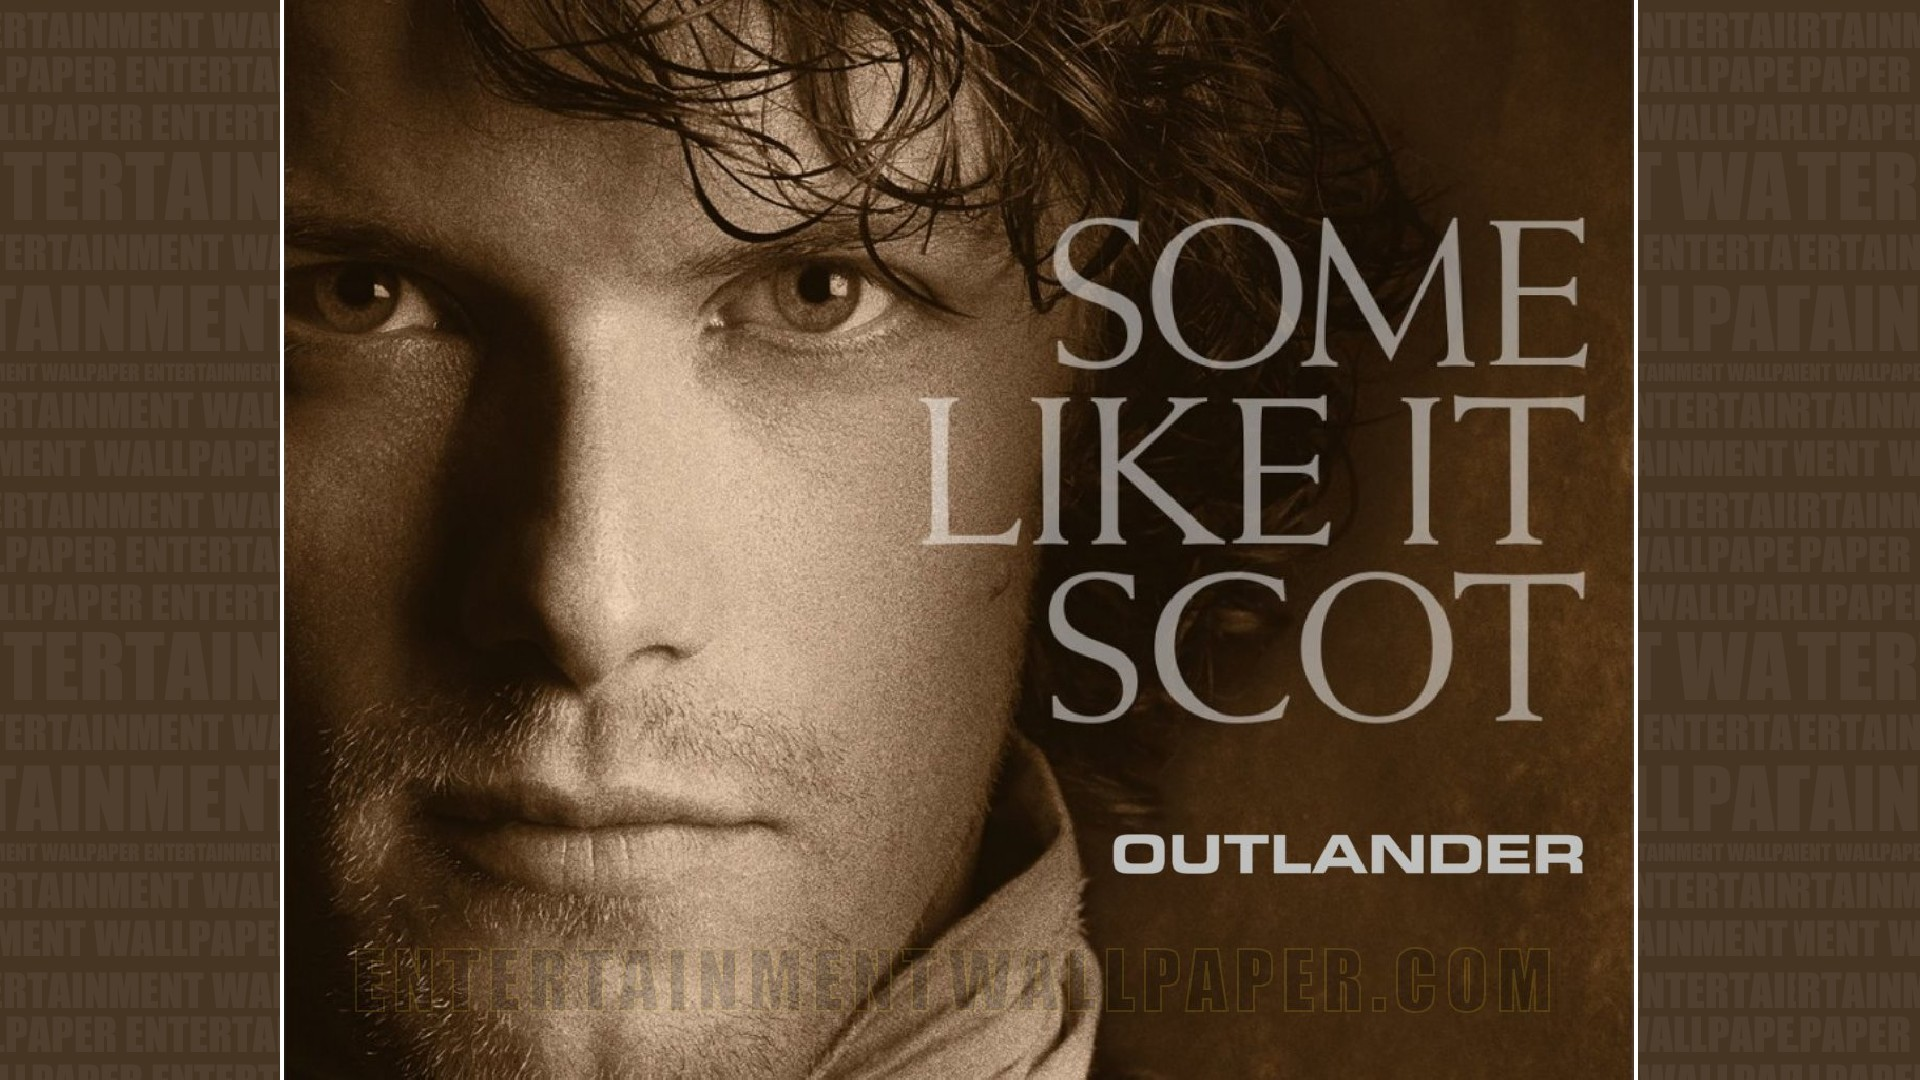 Outlander 2014 TV Series Outlander WallpaperOutlander Tv Series